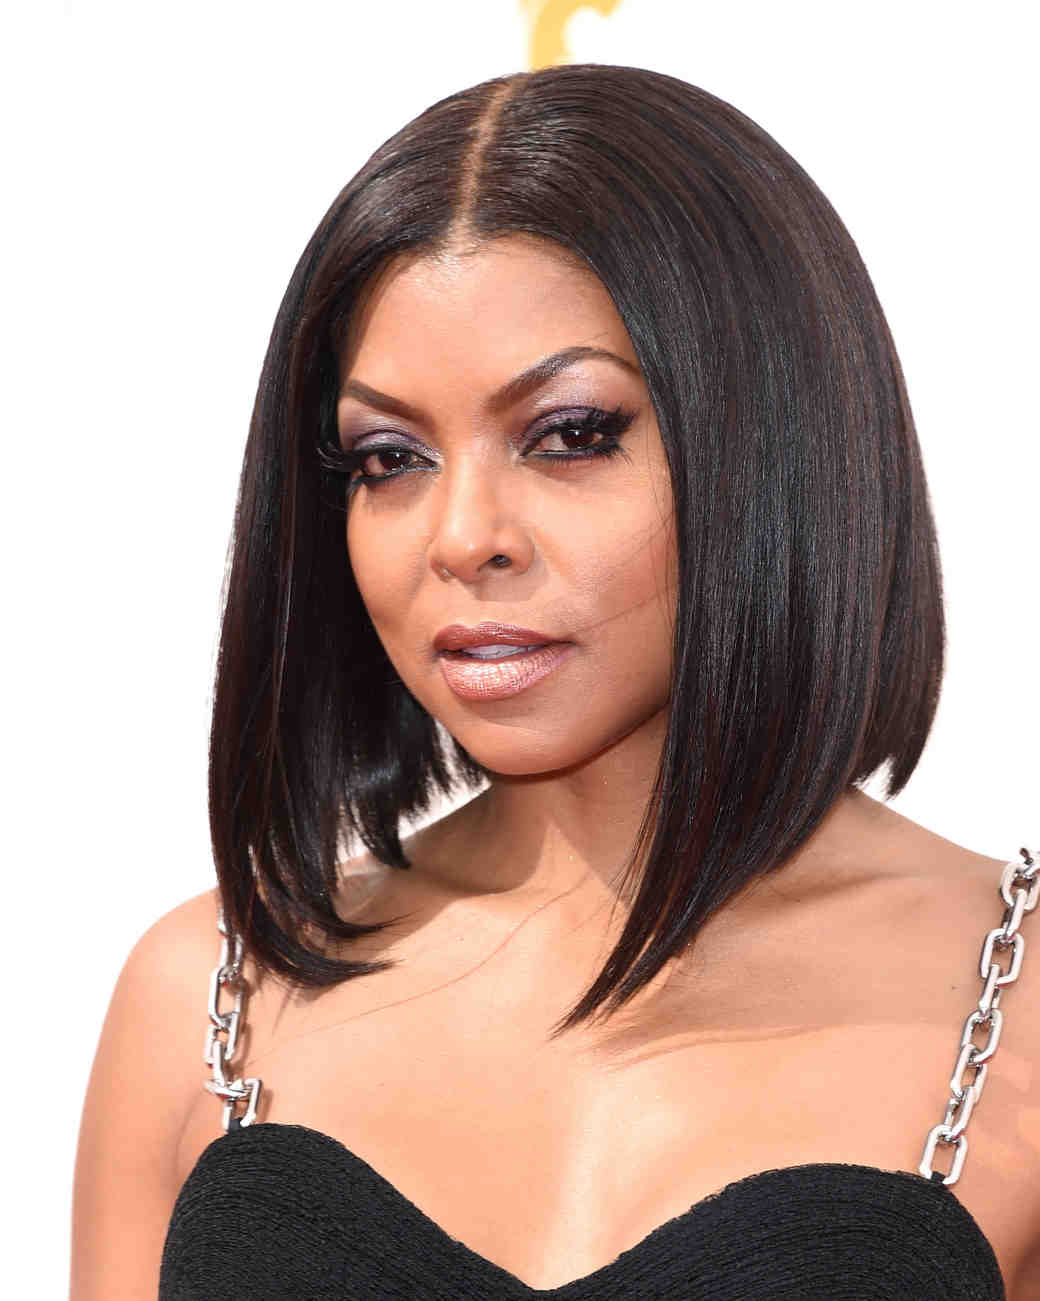 celebrity-wedding-makeup-taraji-henson-gettyimages-489360510-0915.jpg